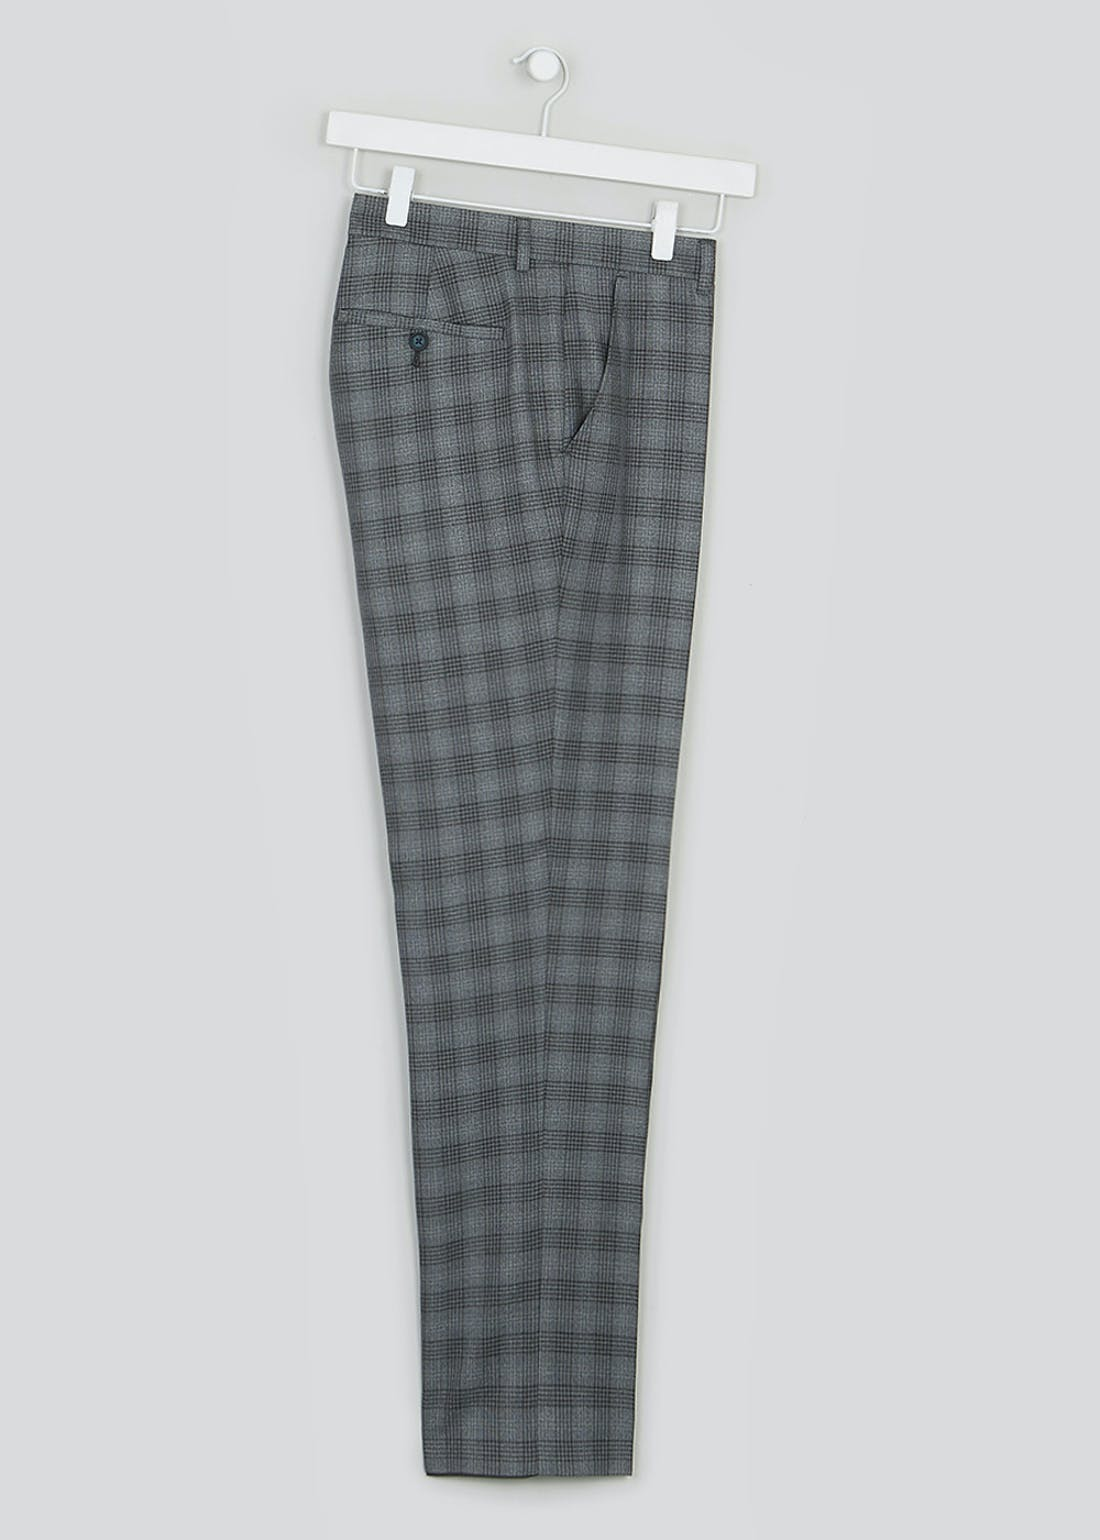 Taylor & Wright Ainsworth Tailored Fit Suit Trousers